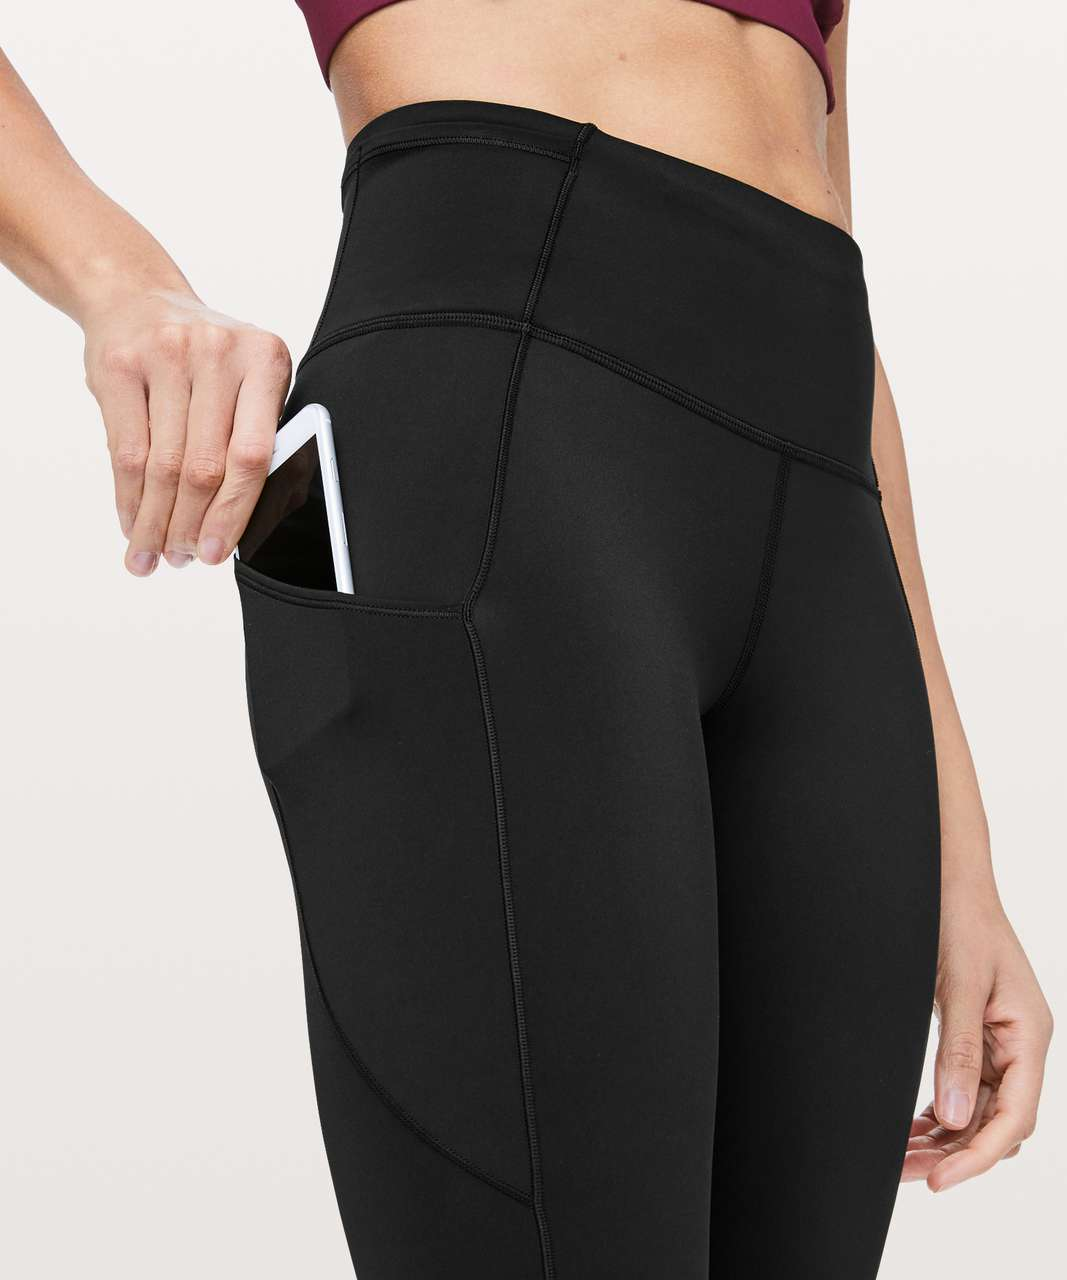 "Lululemon Fast & Free 7/8 Tight II *Non-Reflective Nulux 25"" - Black"